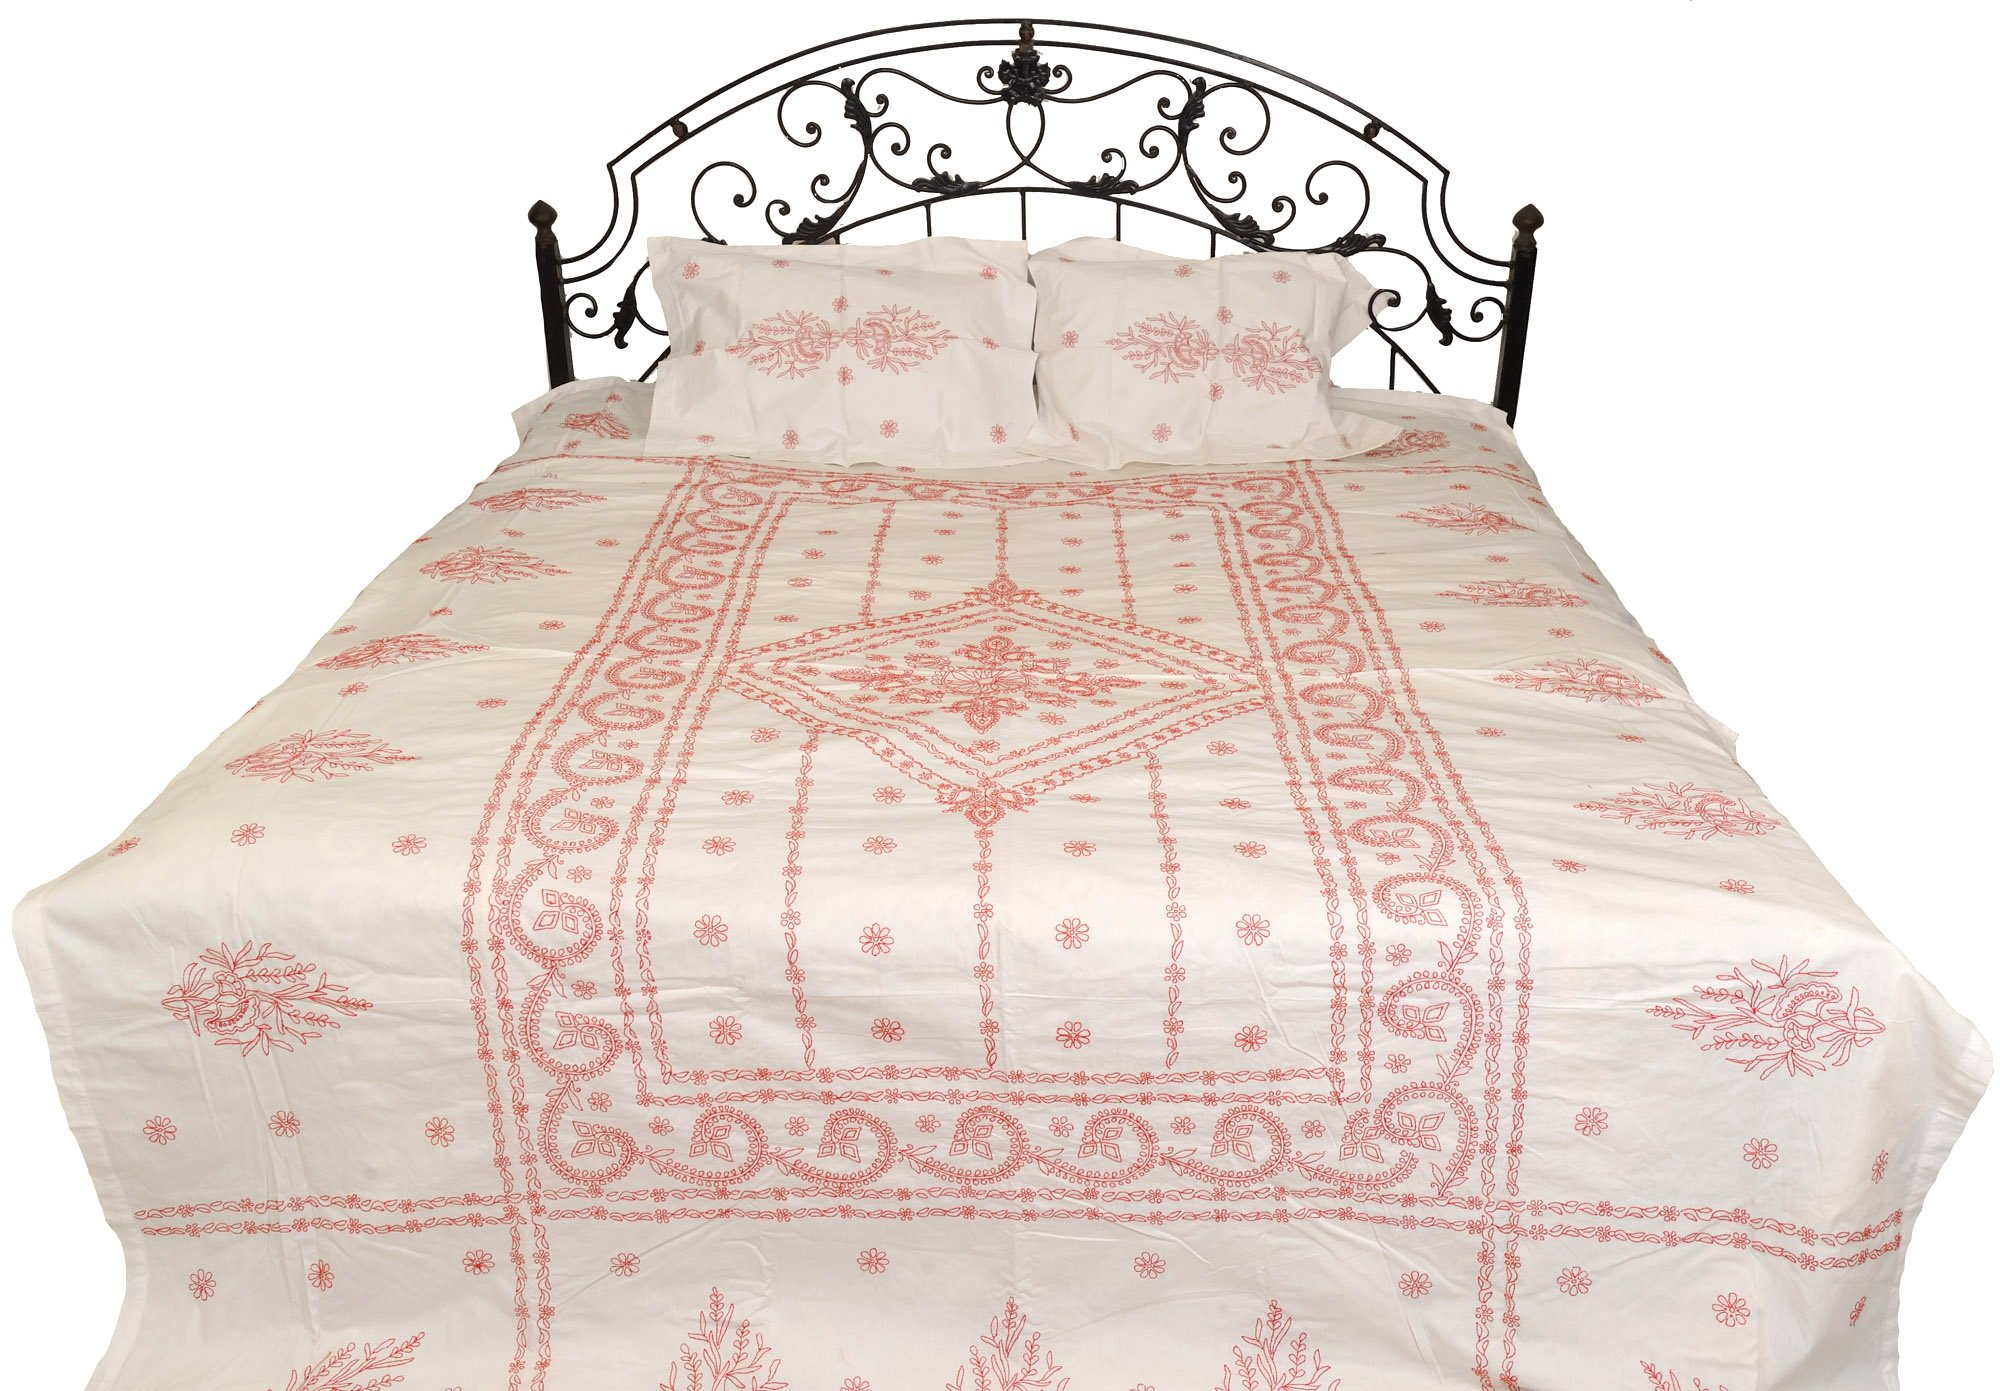 Egret-White Bedspread from Lucknow with Chikan Embroidery by Hand - Pure Cotton with Pillow Covers